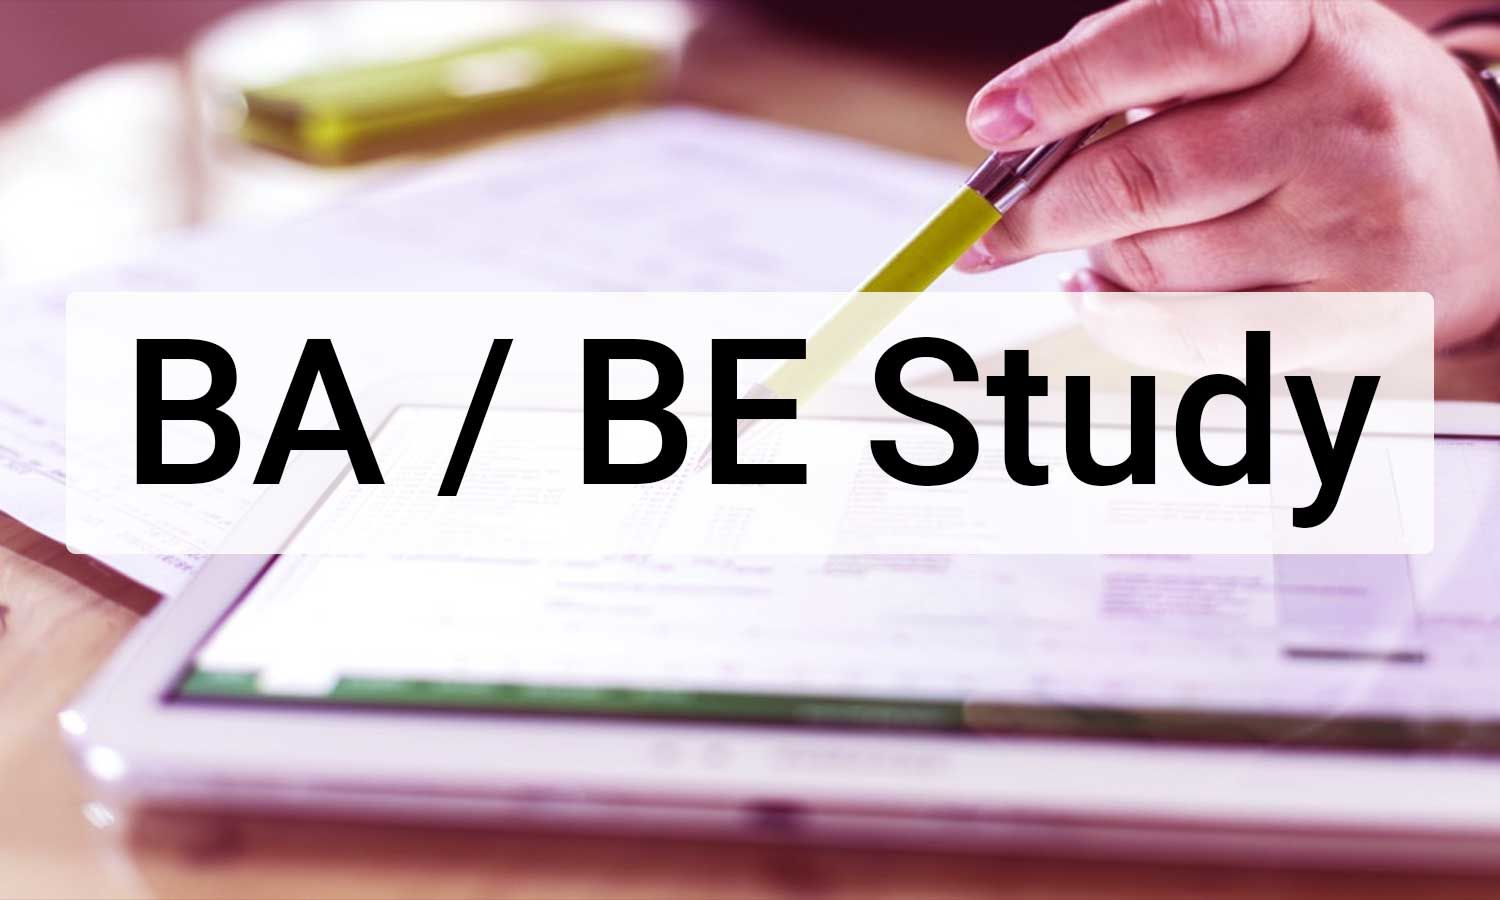 BA/BE study applications have to be processed in 15 days: CDSCO